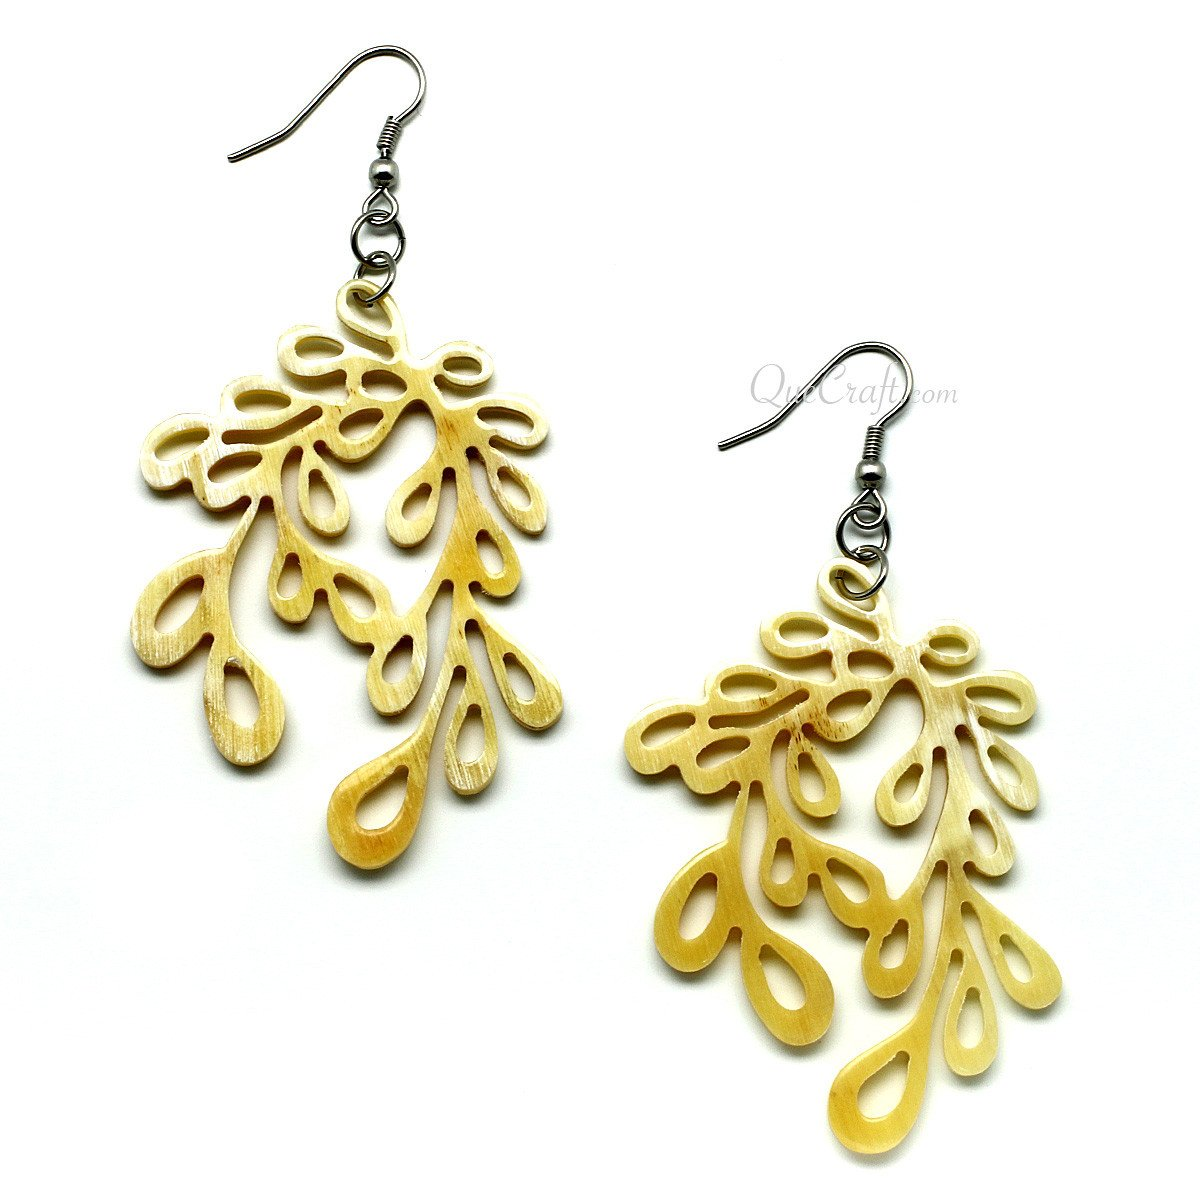 Horn Earrings #11622 - HORN.JEWELRY by QueCraft